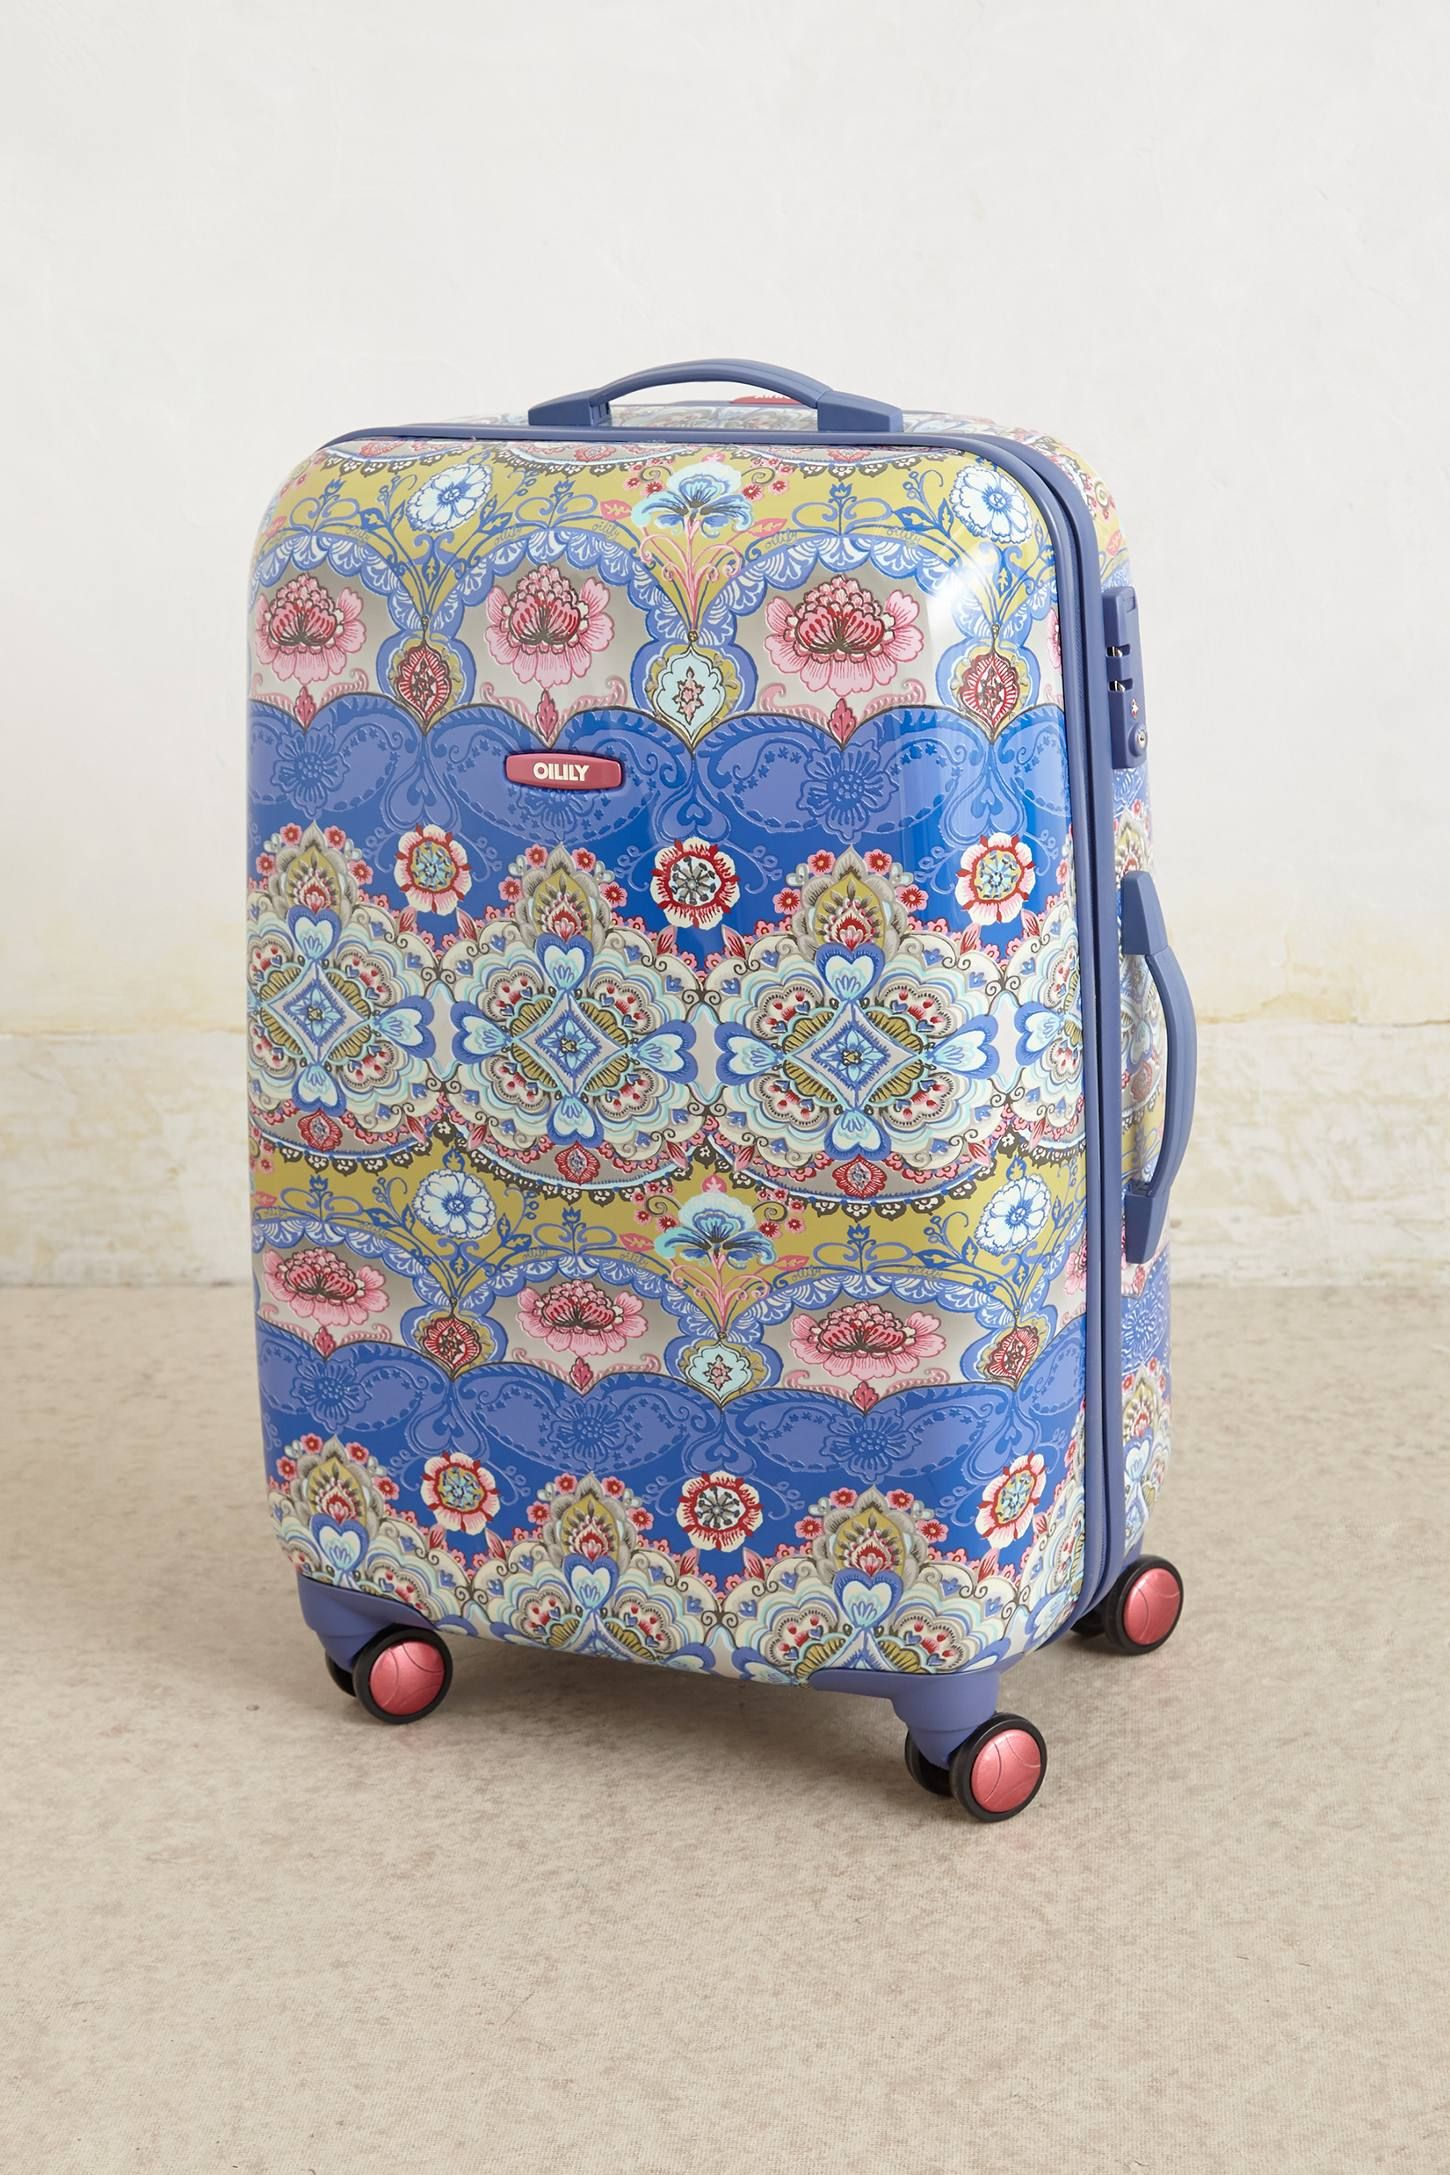 Bon Vivant Hardshell Suitcase - anthropologie.com | Your ...